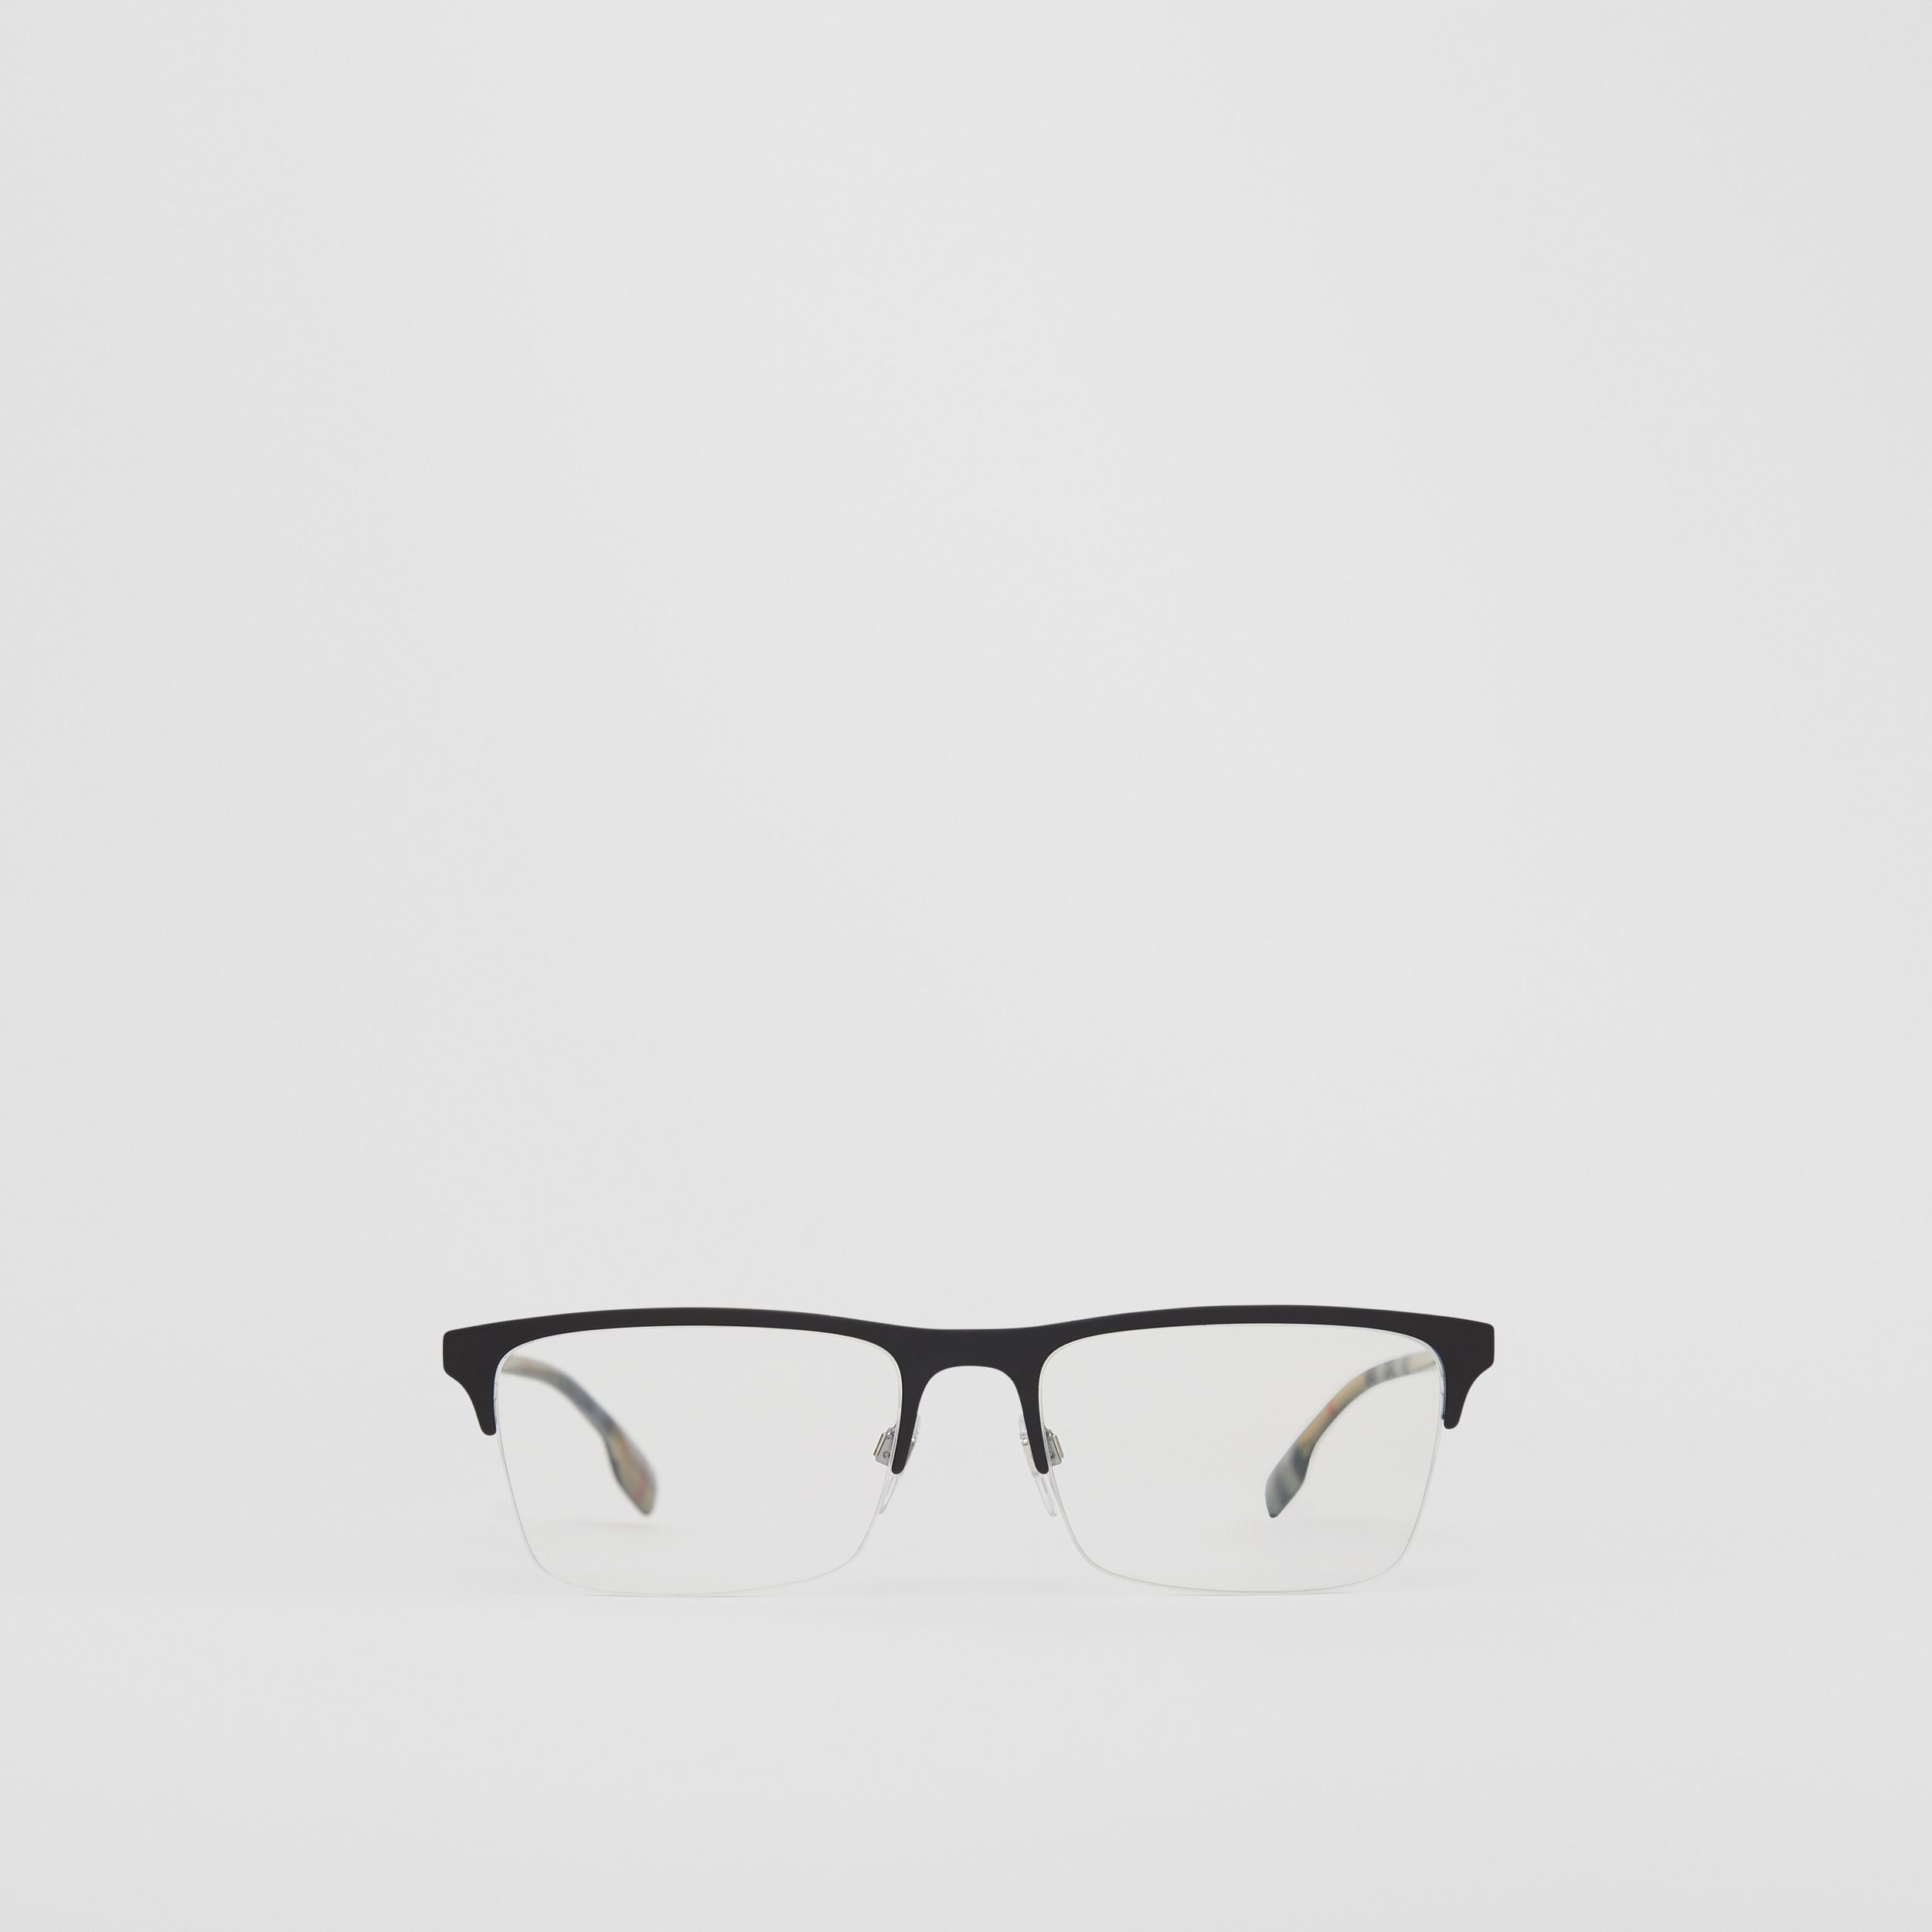 Rectangular Optical Frames in Matte Black - Men | Burberry Australia - 1